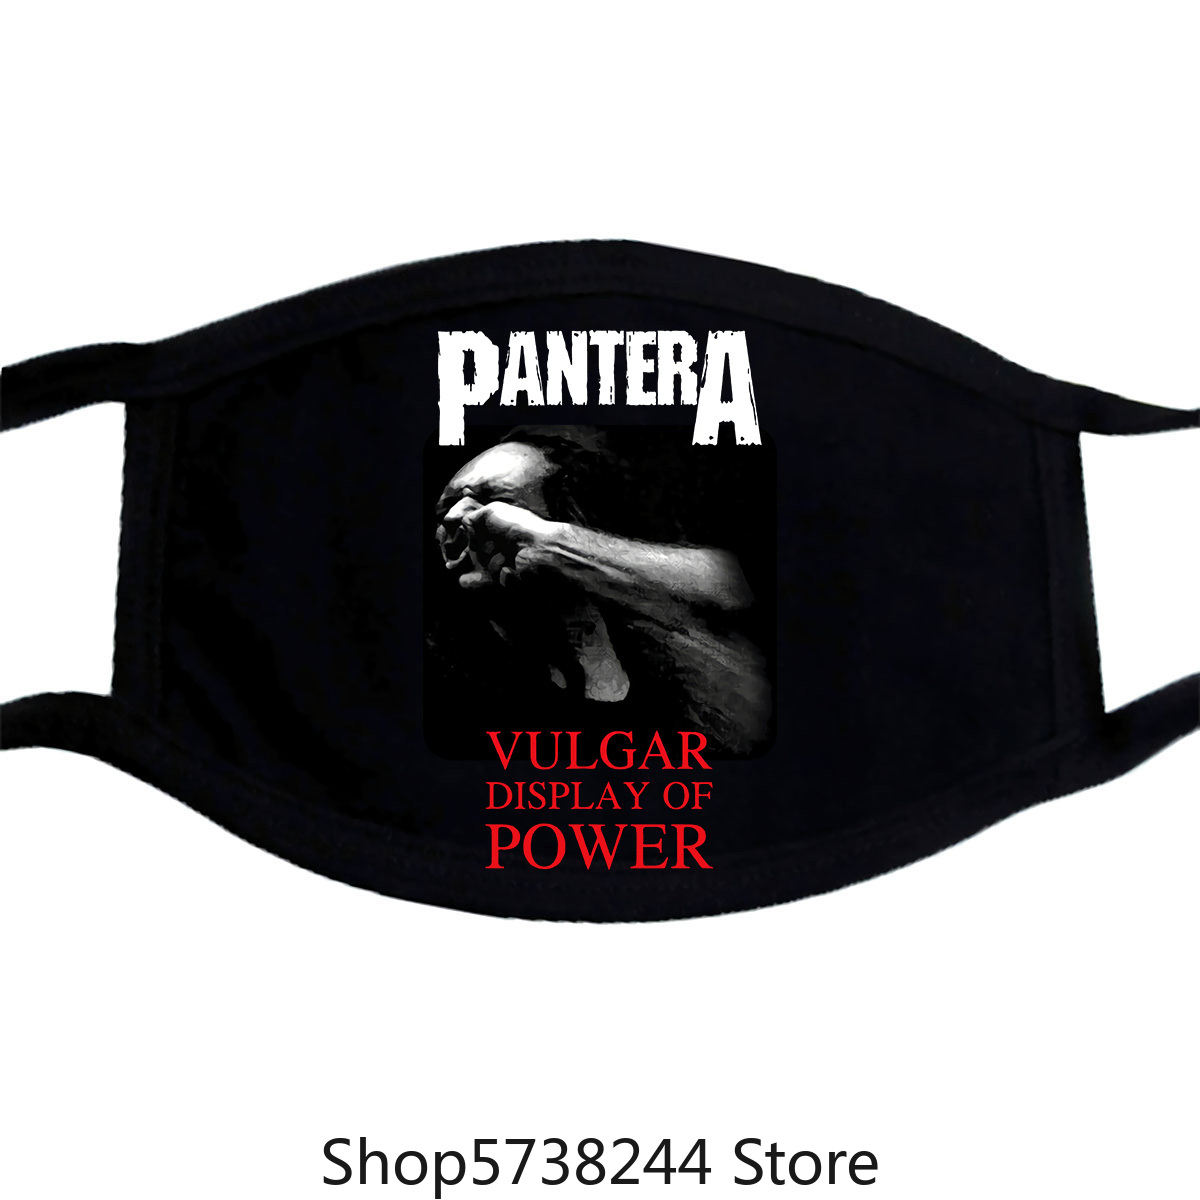 Pantera Vulgar Display Of Power V3 Mask Heavy Metal Black Xs.3Xl Washable Reusable Mask With